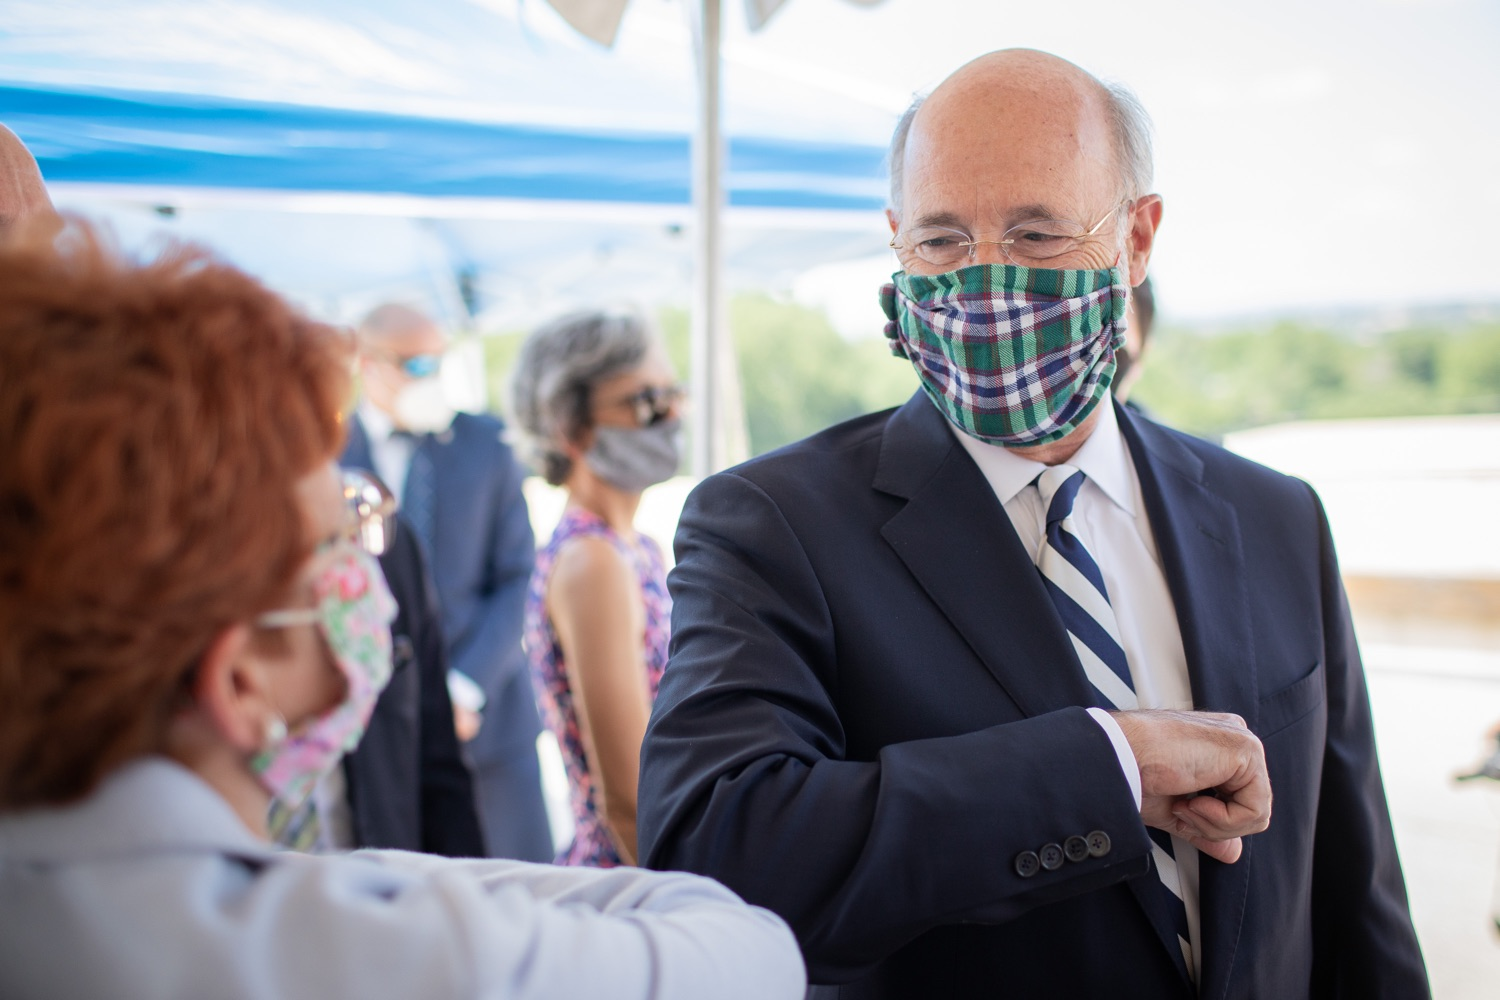 """<a href=""""https://filesource.wostreaming.net/commonwealthofpa/photo/18173_gov_wellspan_hospital_dz_06.jpg"""" target=""""_blank"""">⇣Download Photo<br></a>Pennsylvania governor Tom Wolf visiting with hospital staff and visitors.  With a recent rise in COVID cases and subsequent additional targeted mitigation efforts put in place, Governor Tom Wolf today visited WellSpan York Hospital to thank staff and emphasize why mask-wearing and social distancing are necessary and effective to fight the spread of COVID-19.  Harrisburg, PA  July 21, 2020"""